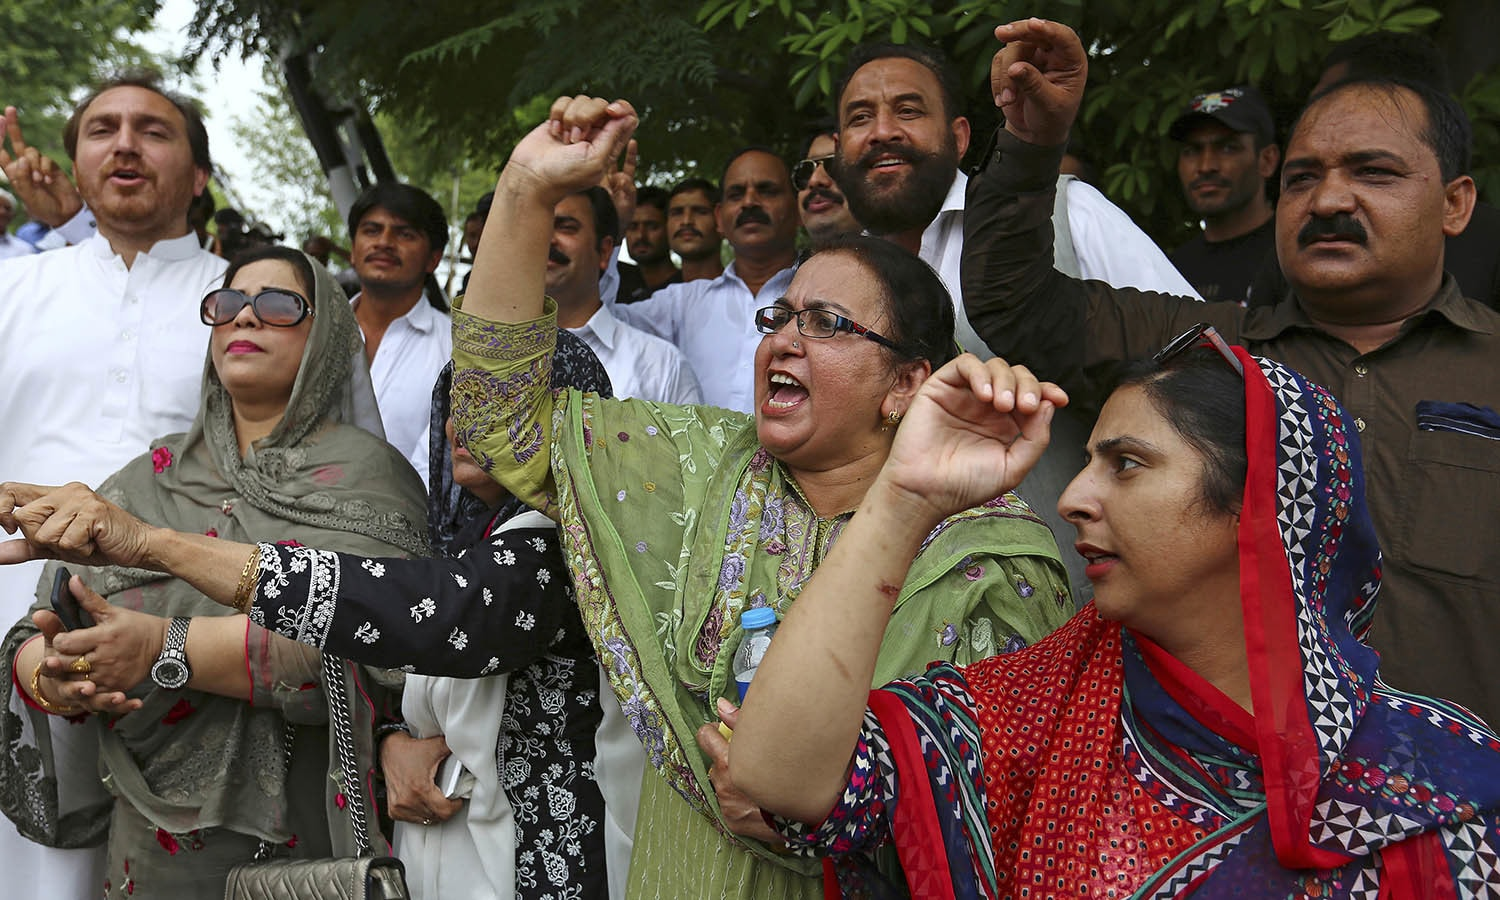 Opponents of PML-N shout slogans after the Supreme Court's decision to disqualify Nawaz Sharif. —AP